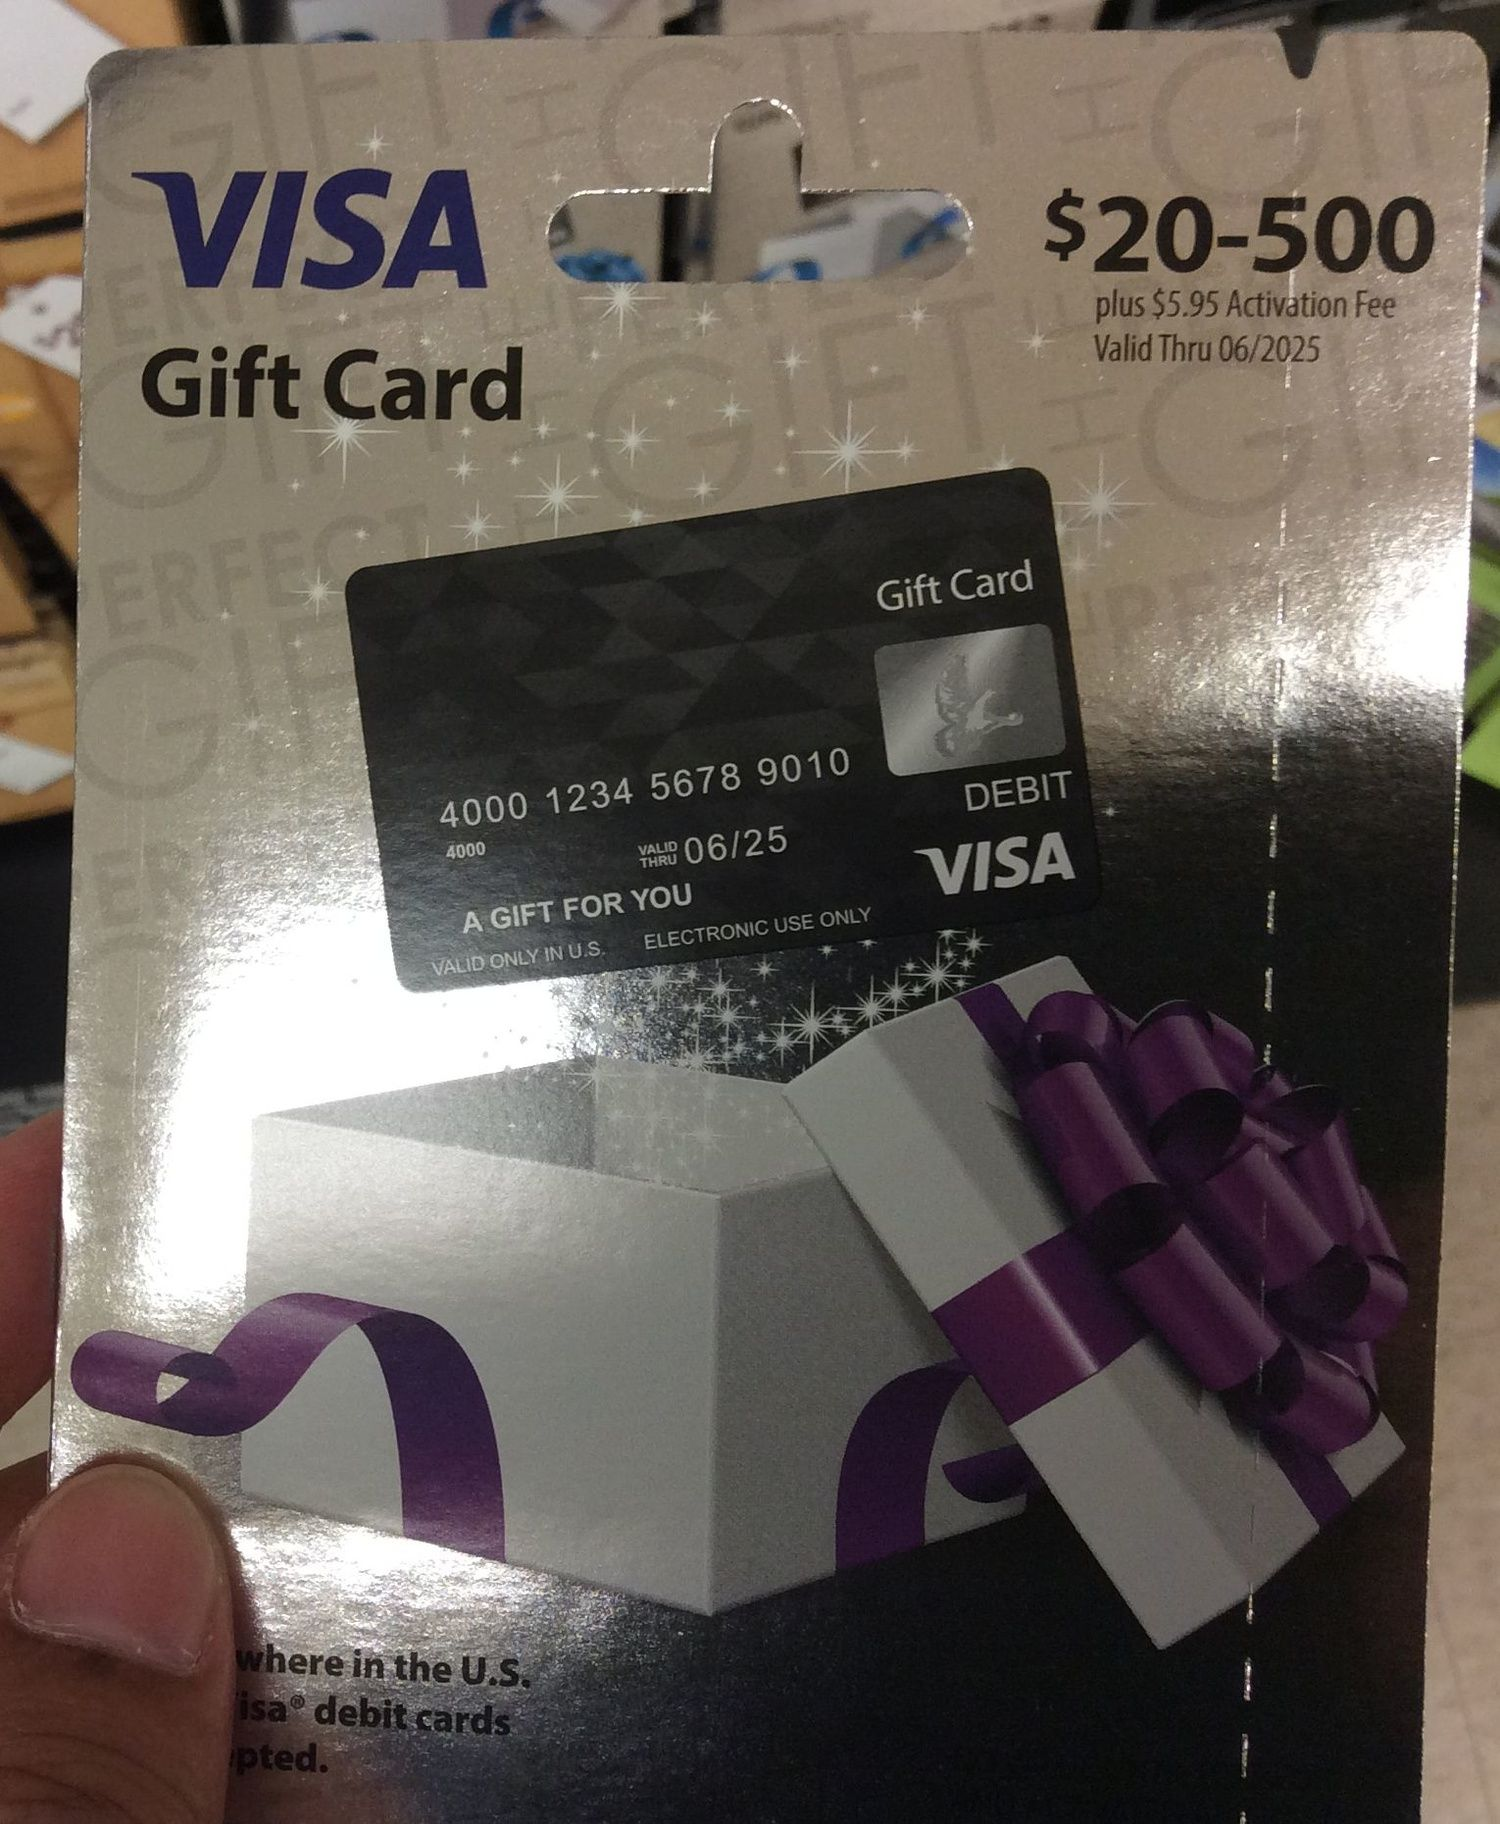 visa gift card purchase 1